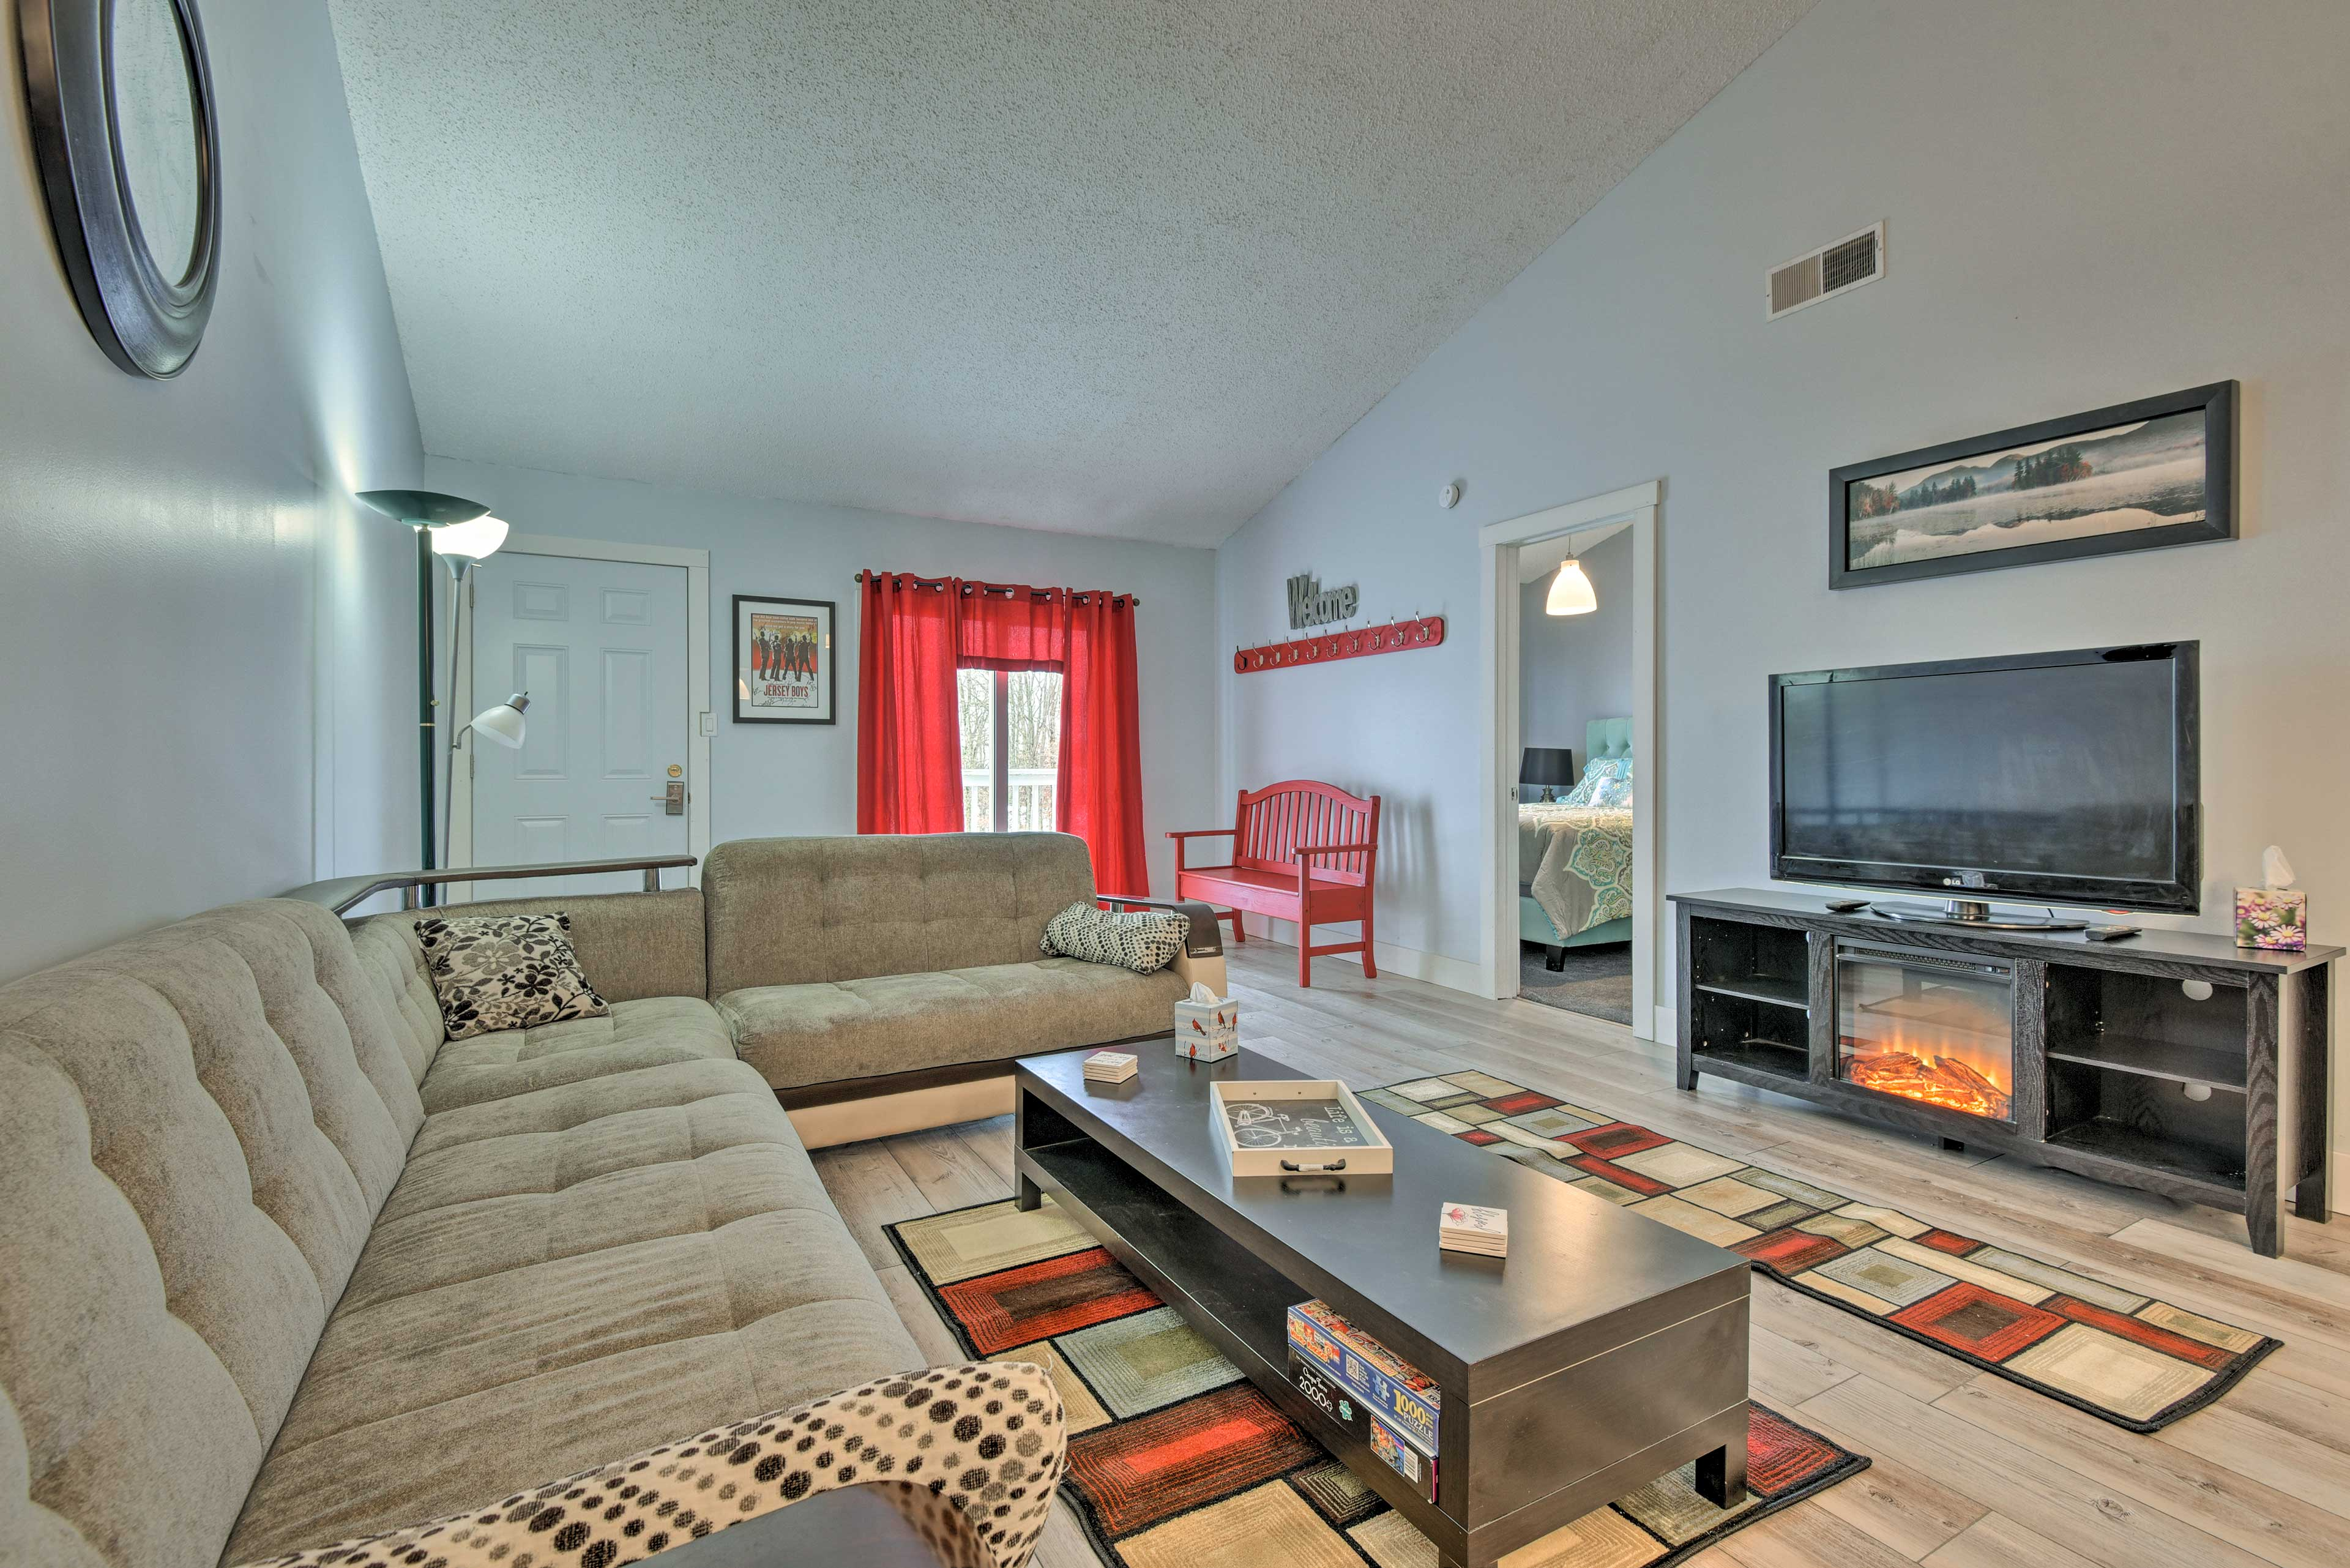 There is also an electric fireplace and flat-screen cable TV in the living room.